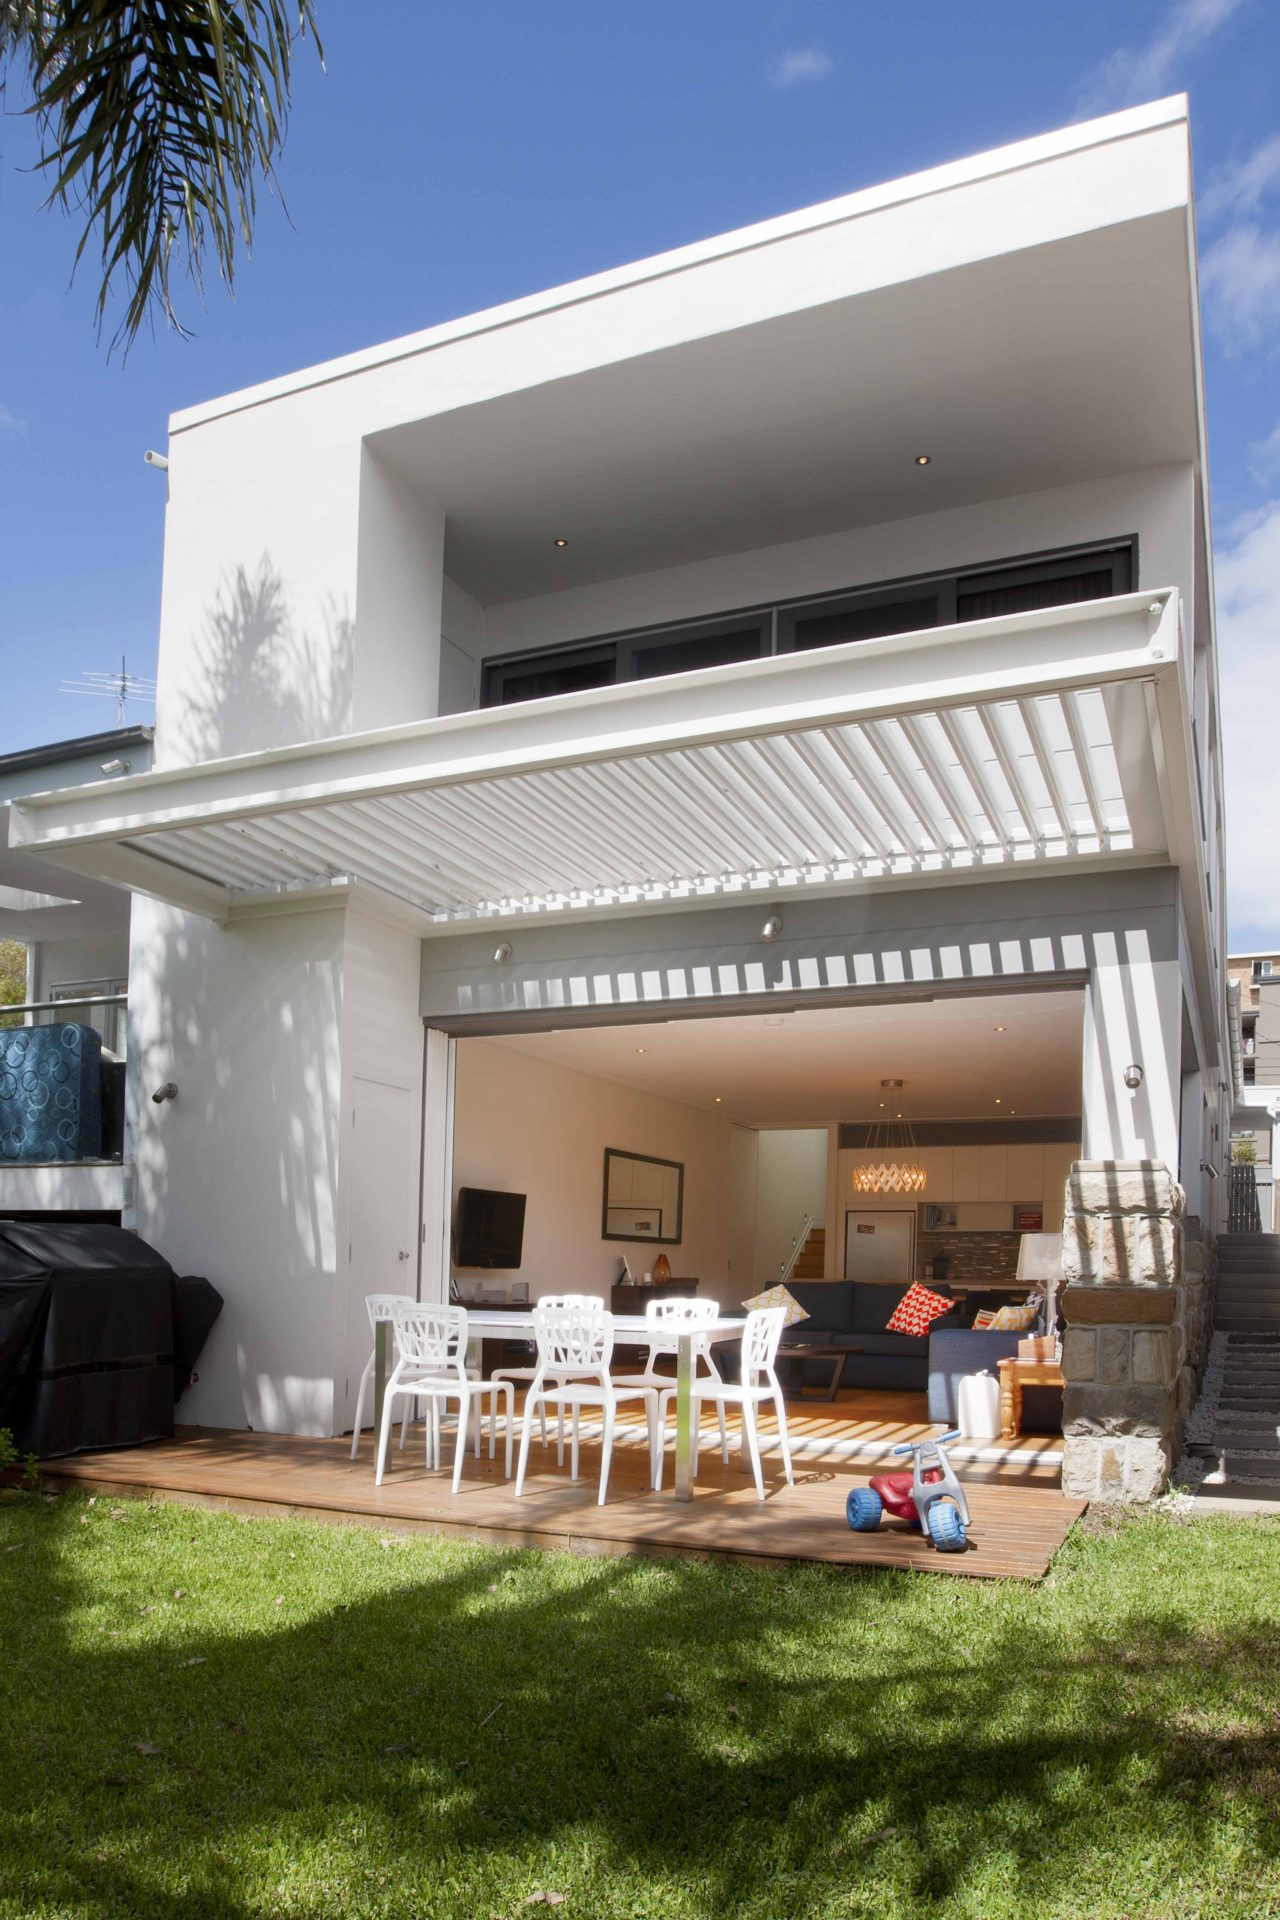 Clovelly Backyard with outdoor entertaining area leading into living room